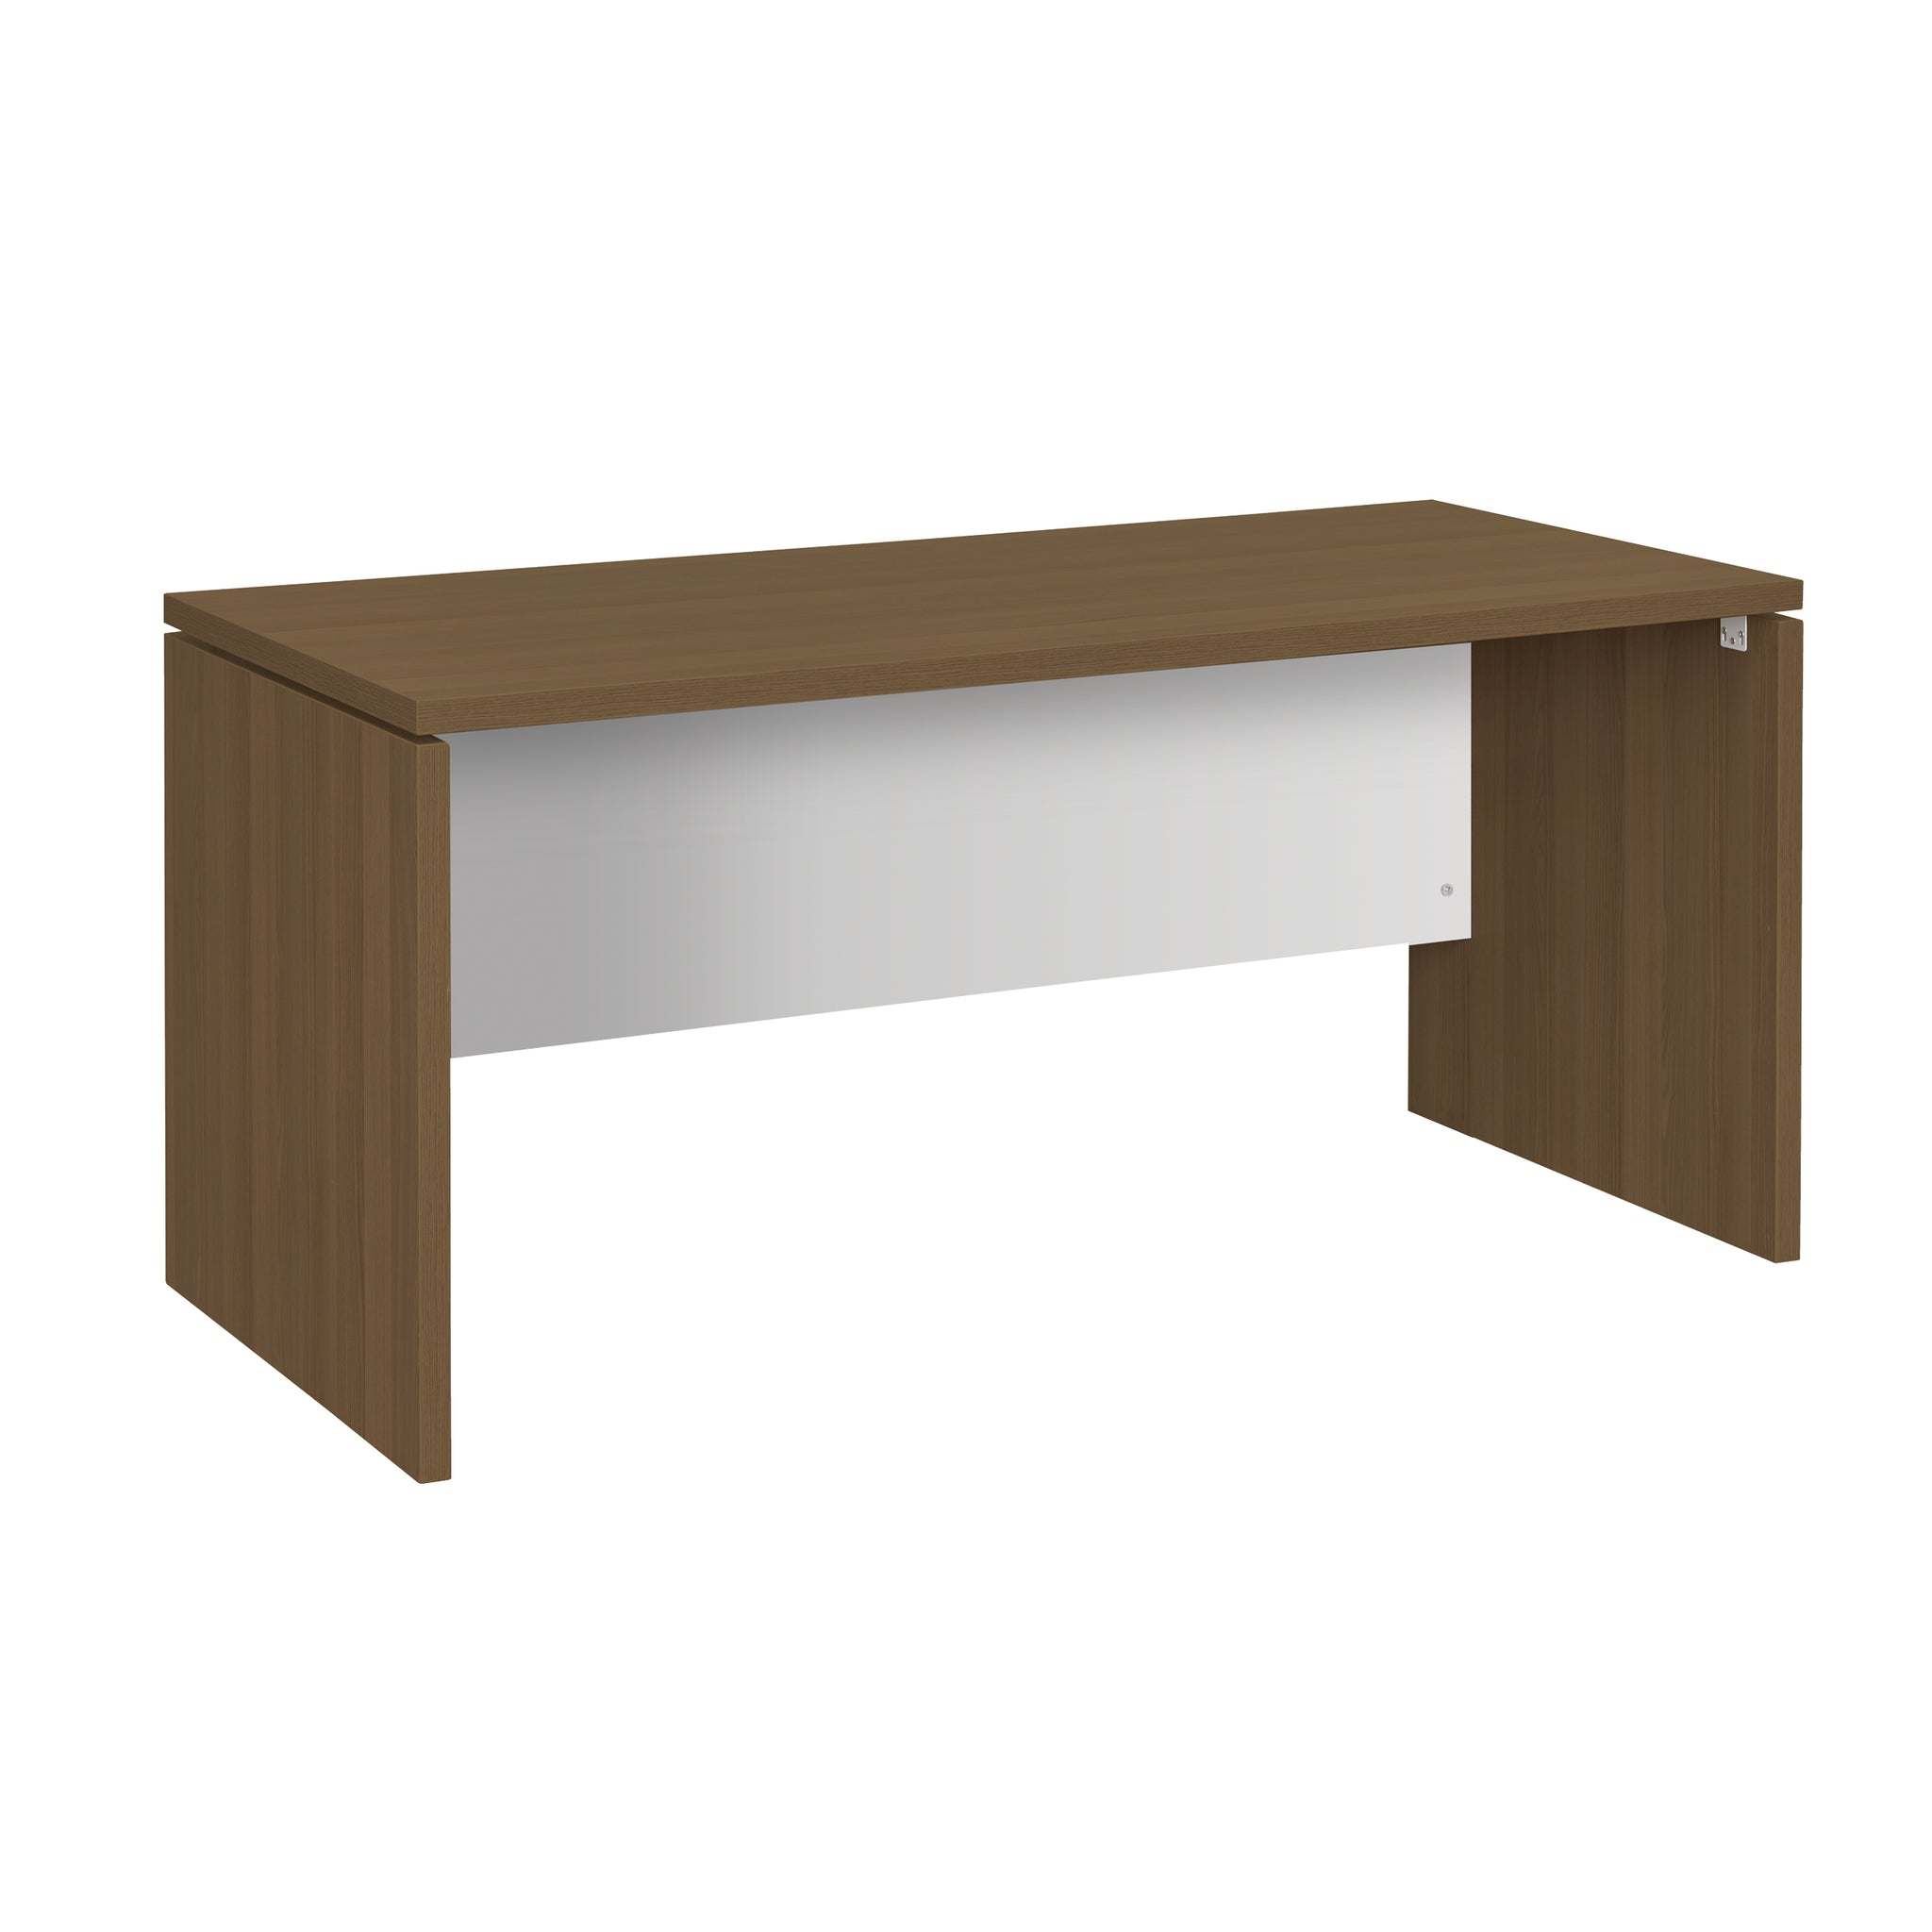 Hedcor Cobalt cool desk shell